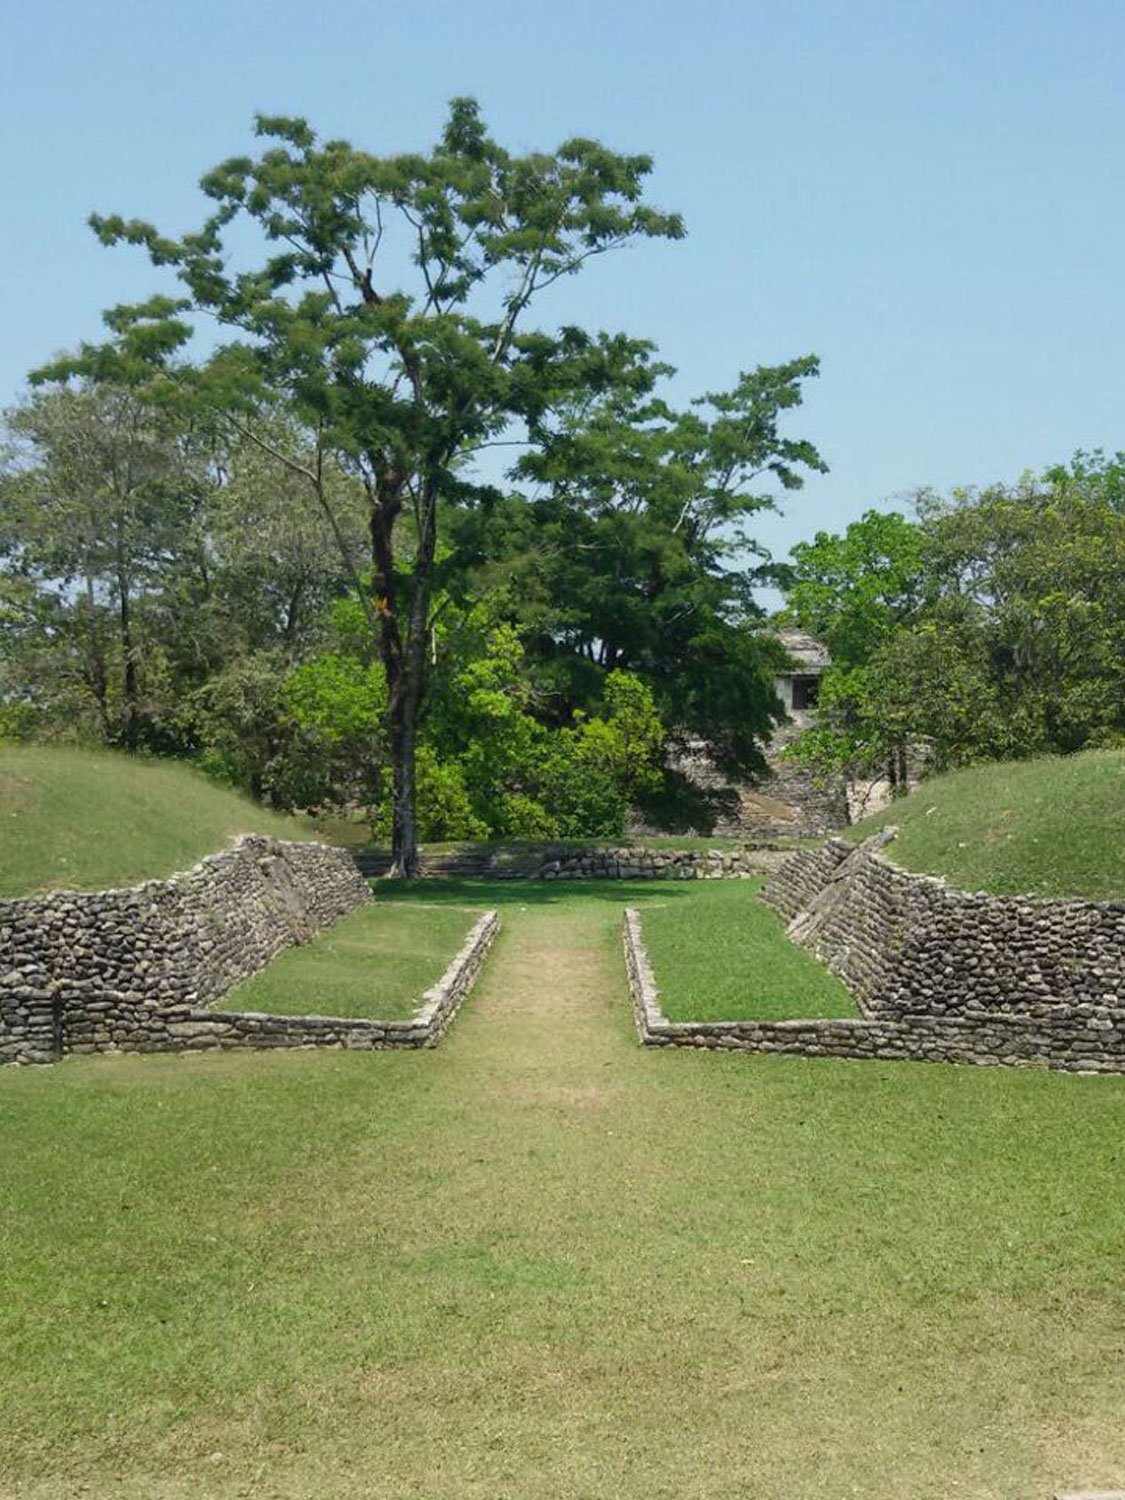 Palenque ball court.